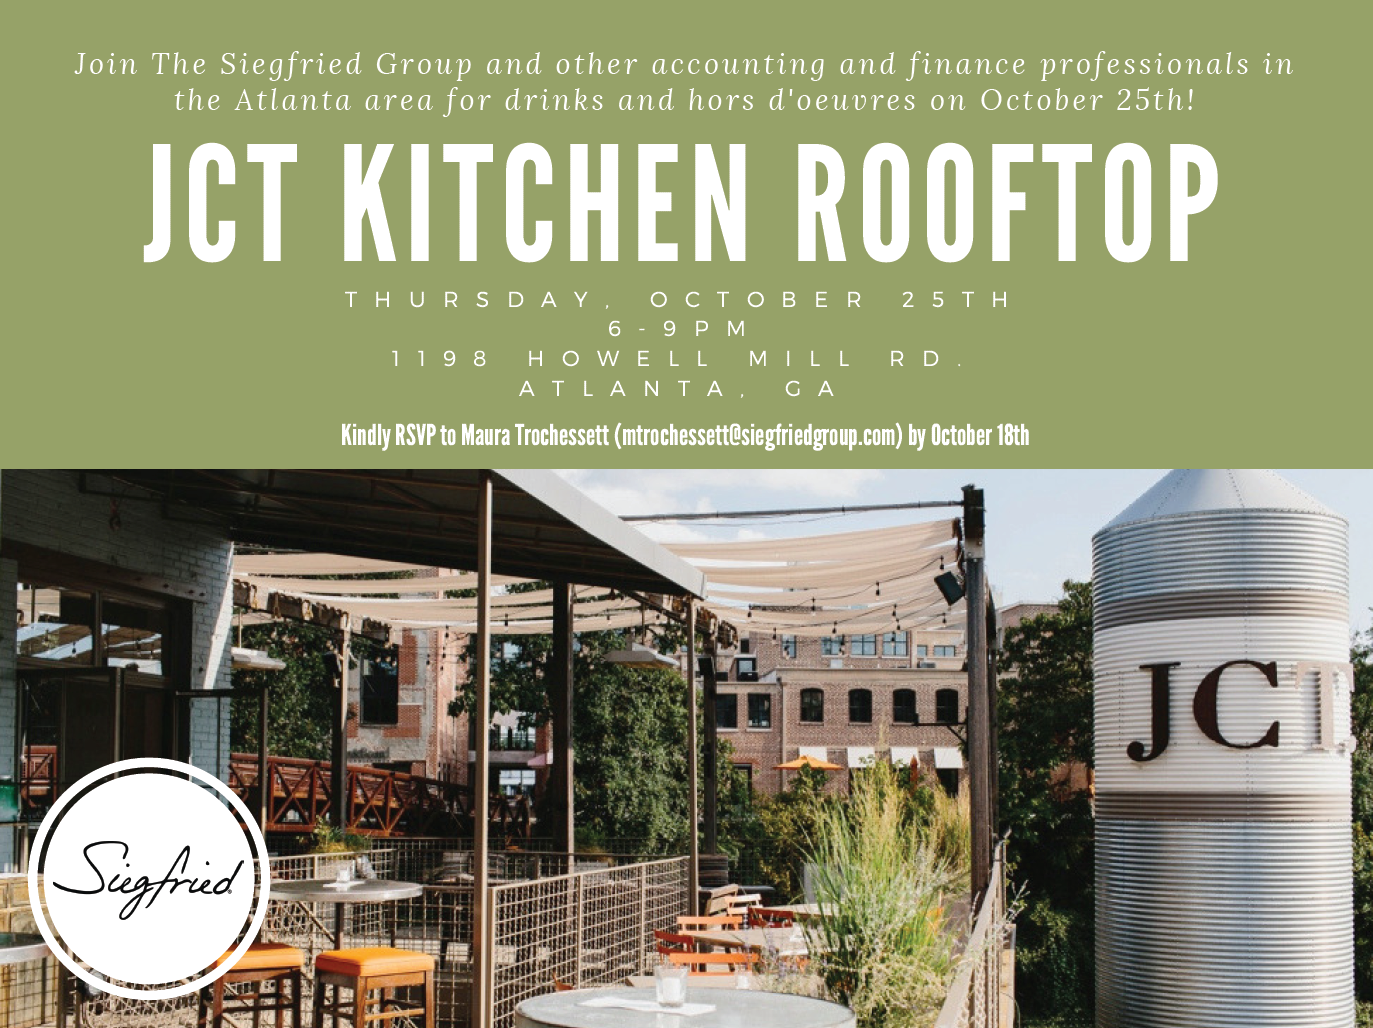 Jct Kitchen Networking Event The Siegfried Group